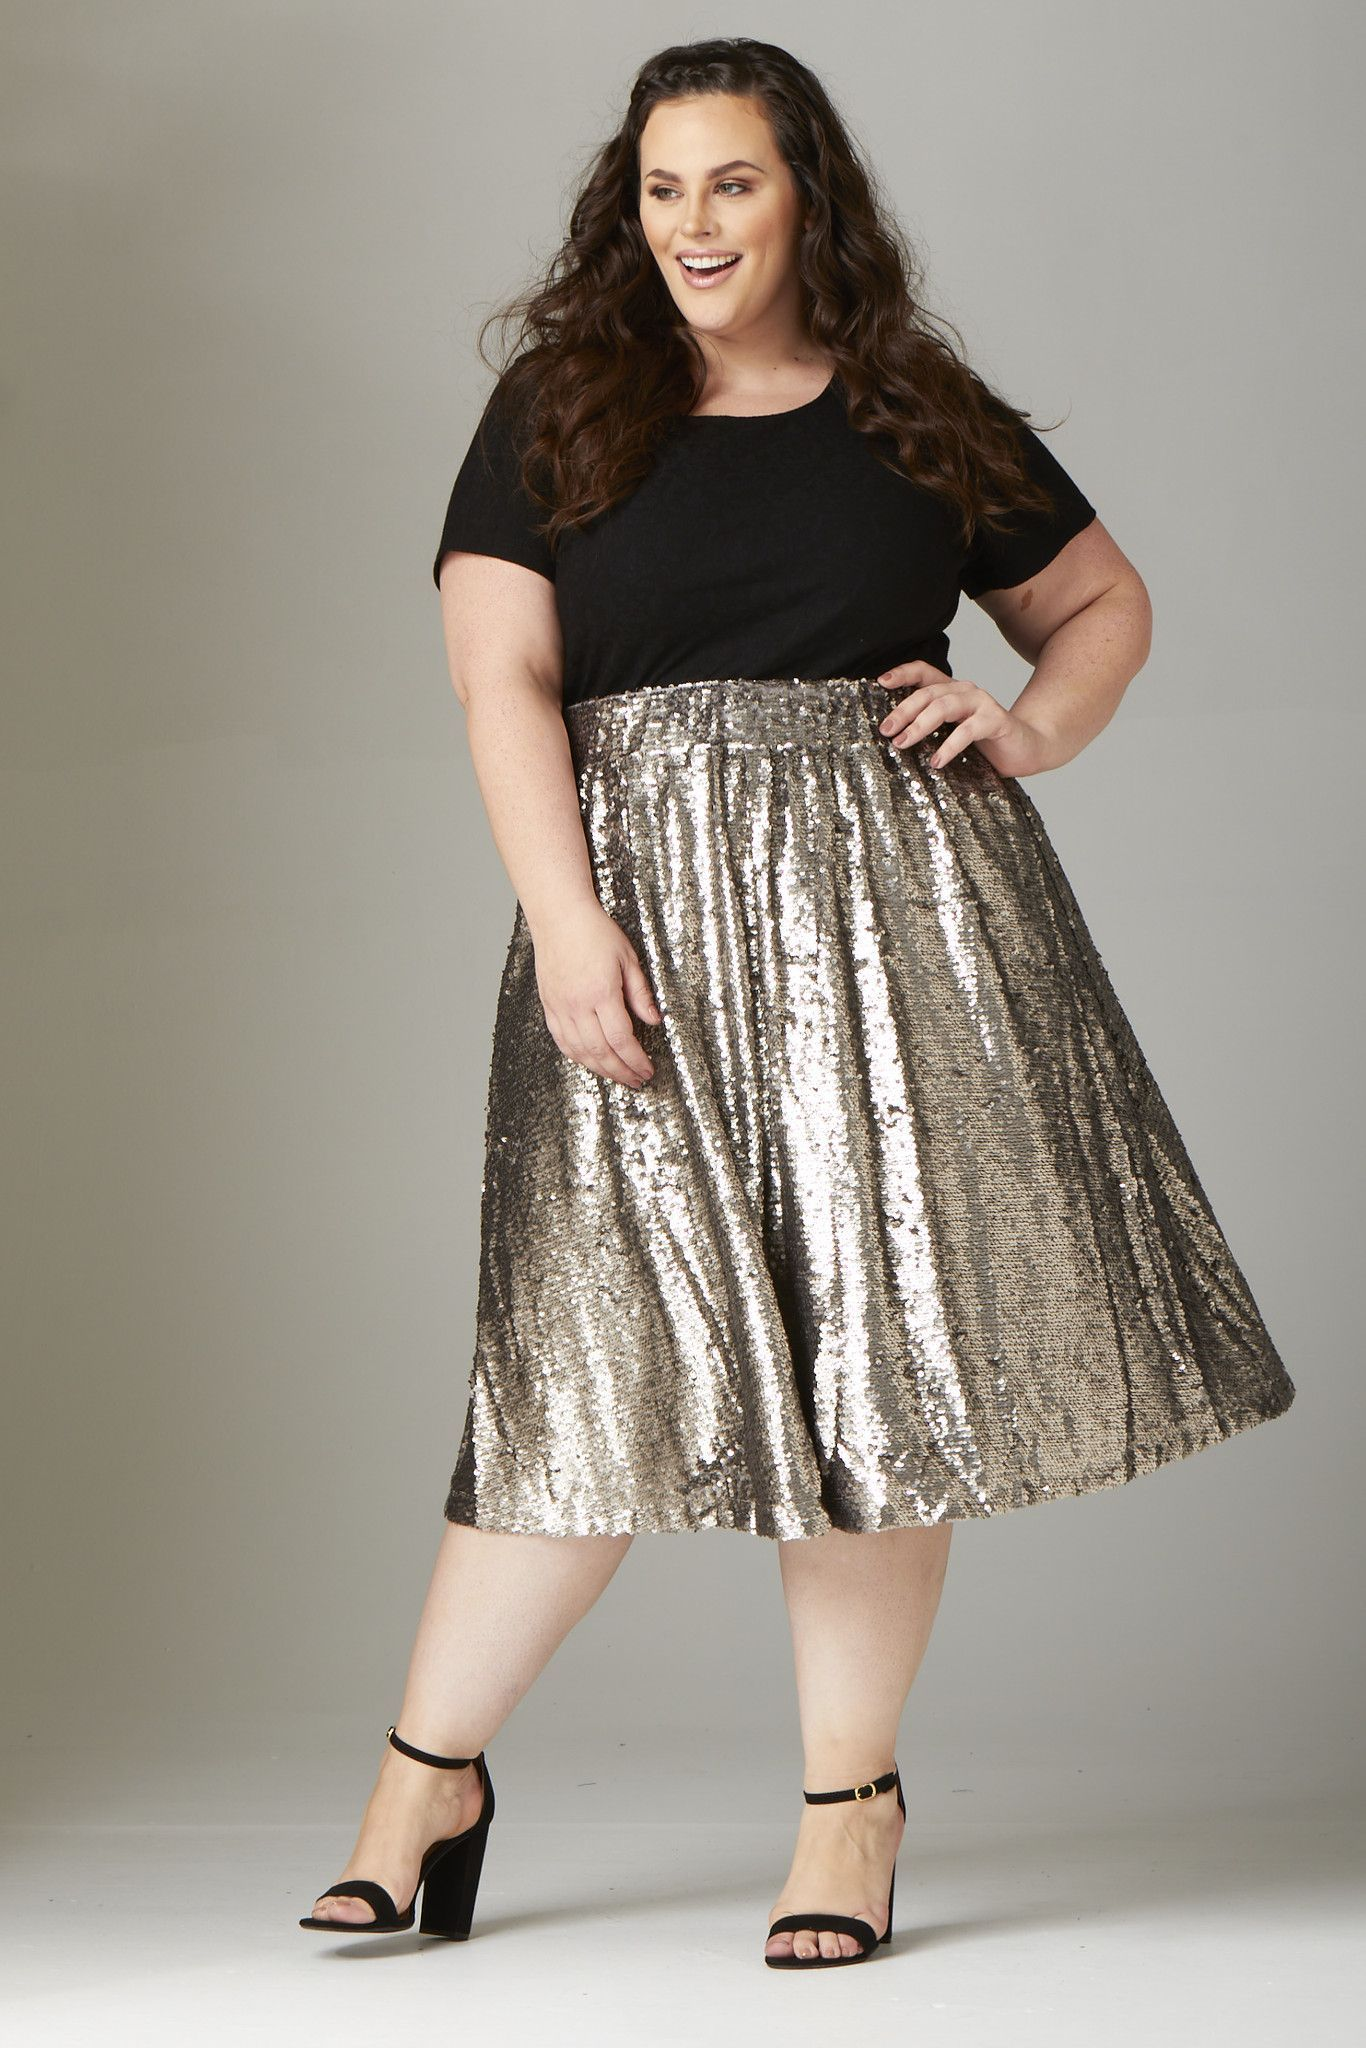 98e8e5f7904 Plus Size Clothing for Women - Mermaiden Sequin Skirt - Silver - Society+ -  Society Plus - Buy Online Now! - 2